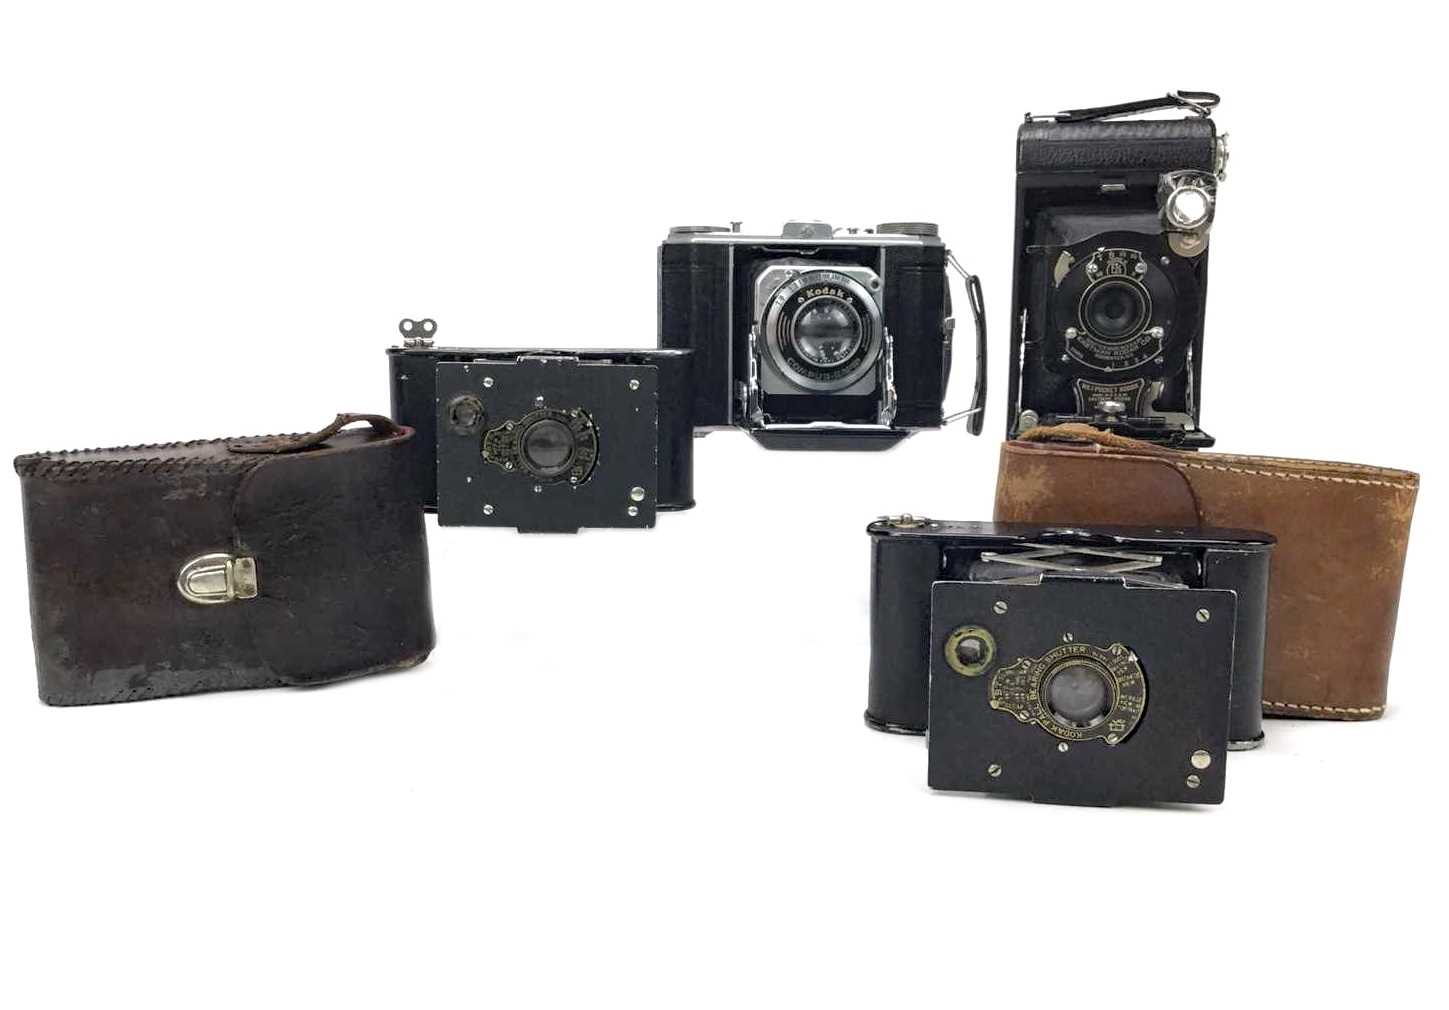 Lot 1460-A LOT OF TWO KODAK VEST POCKET CAMERAS AND TWO OTHER KODAK CAMERAS